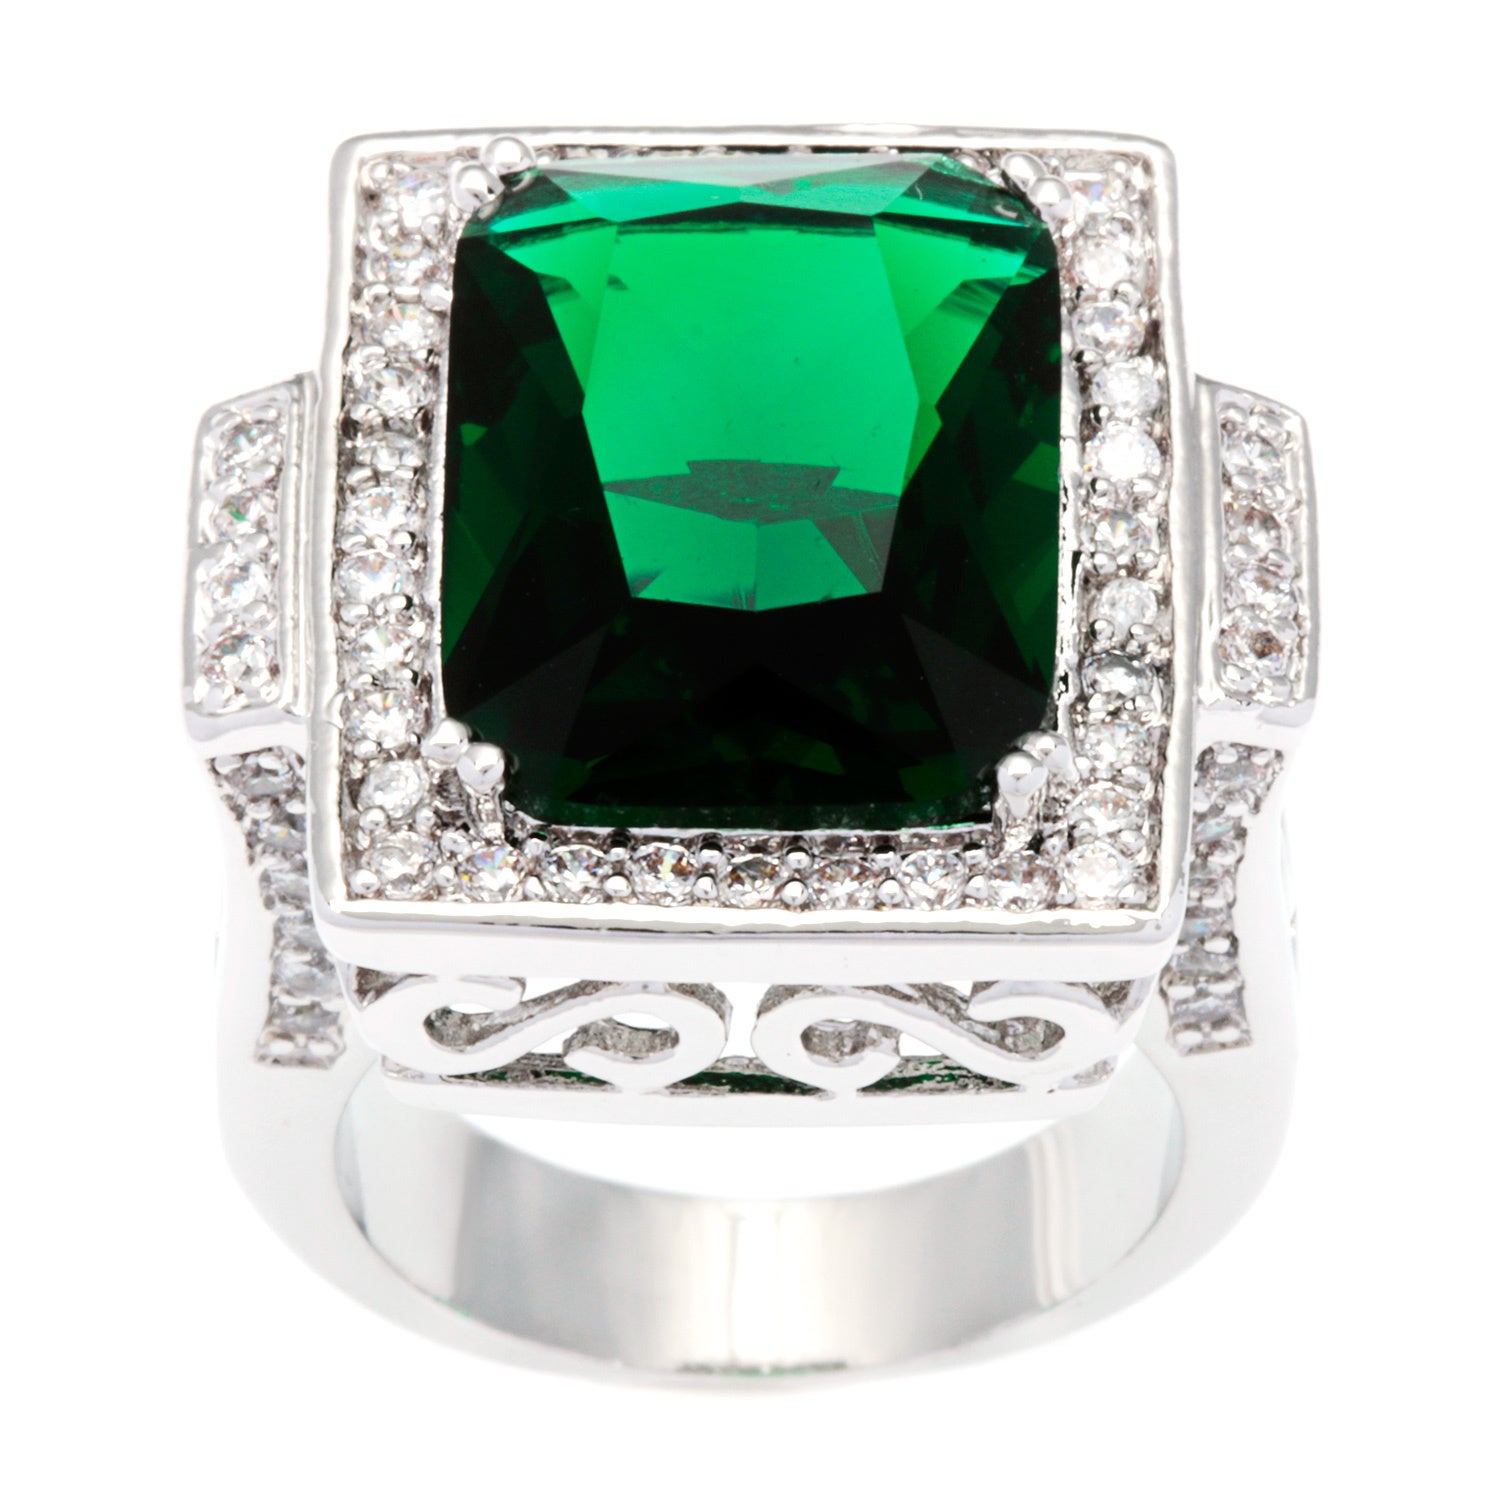 with pin cushion set diamond cut emerald a ring an and